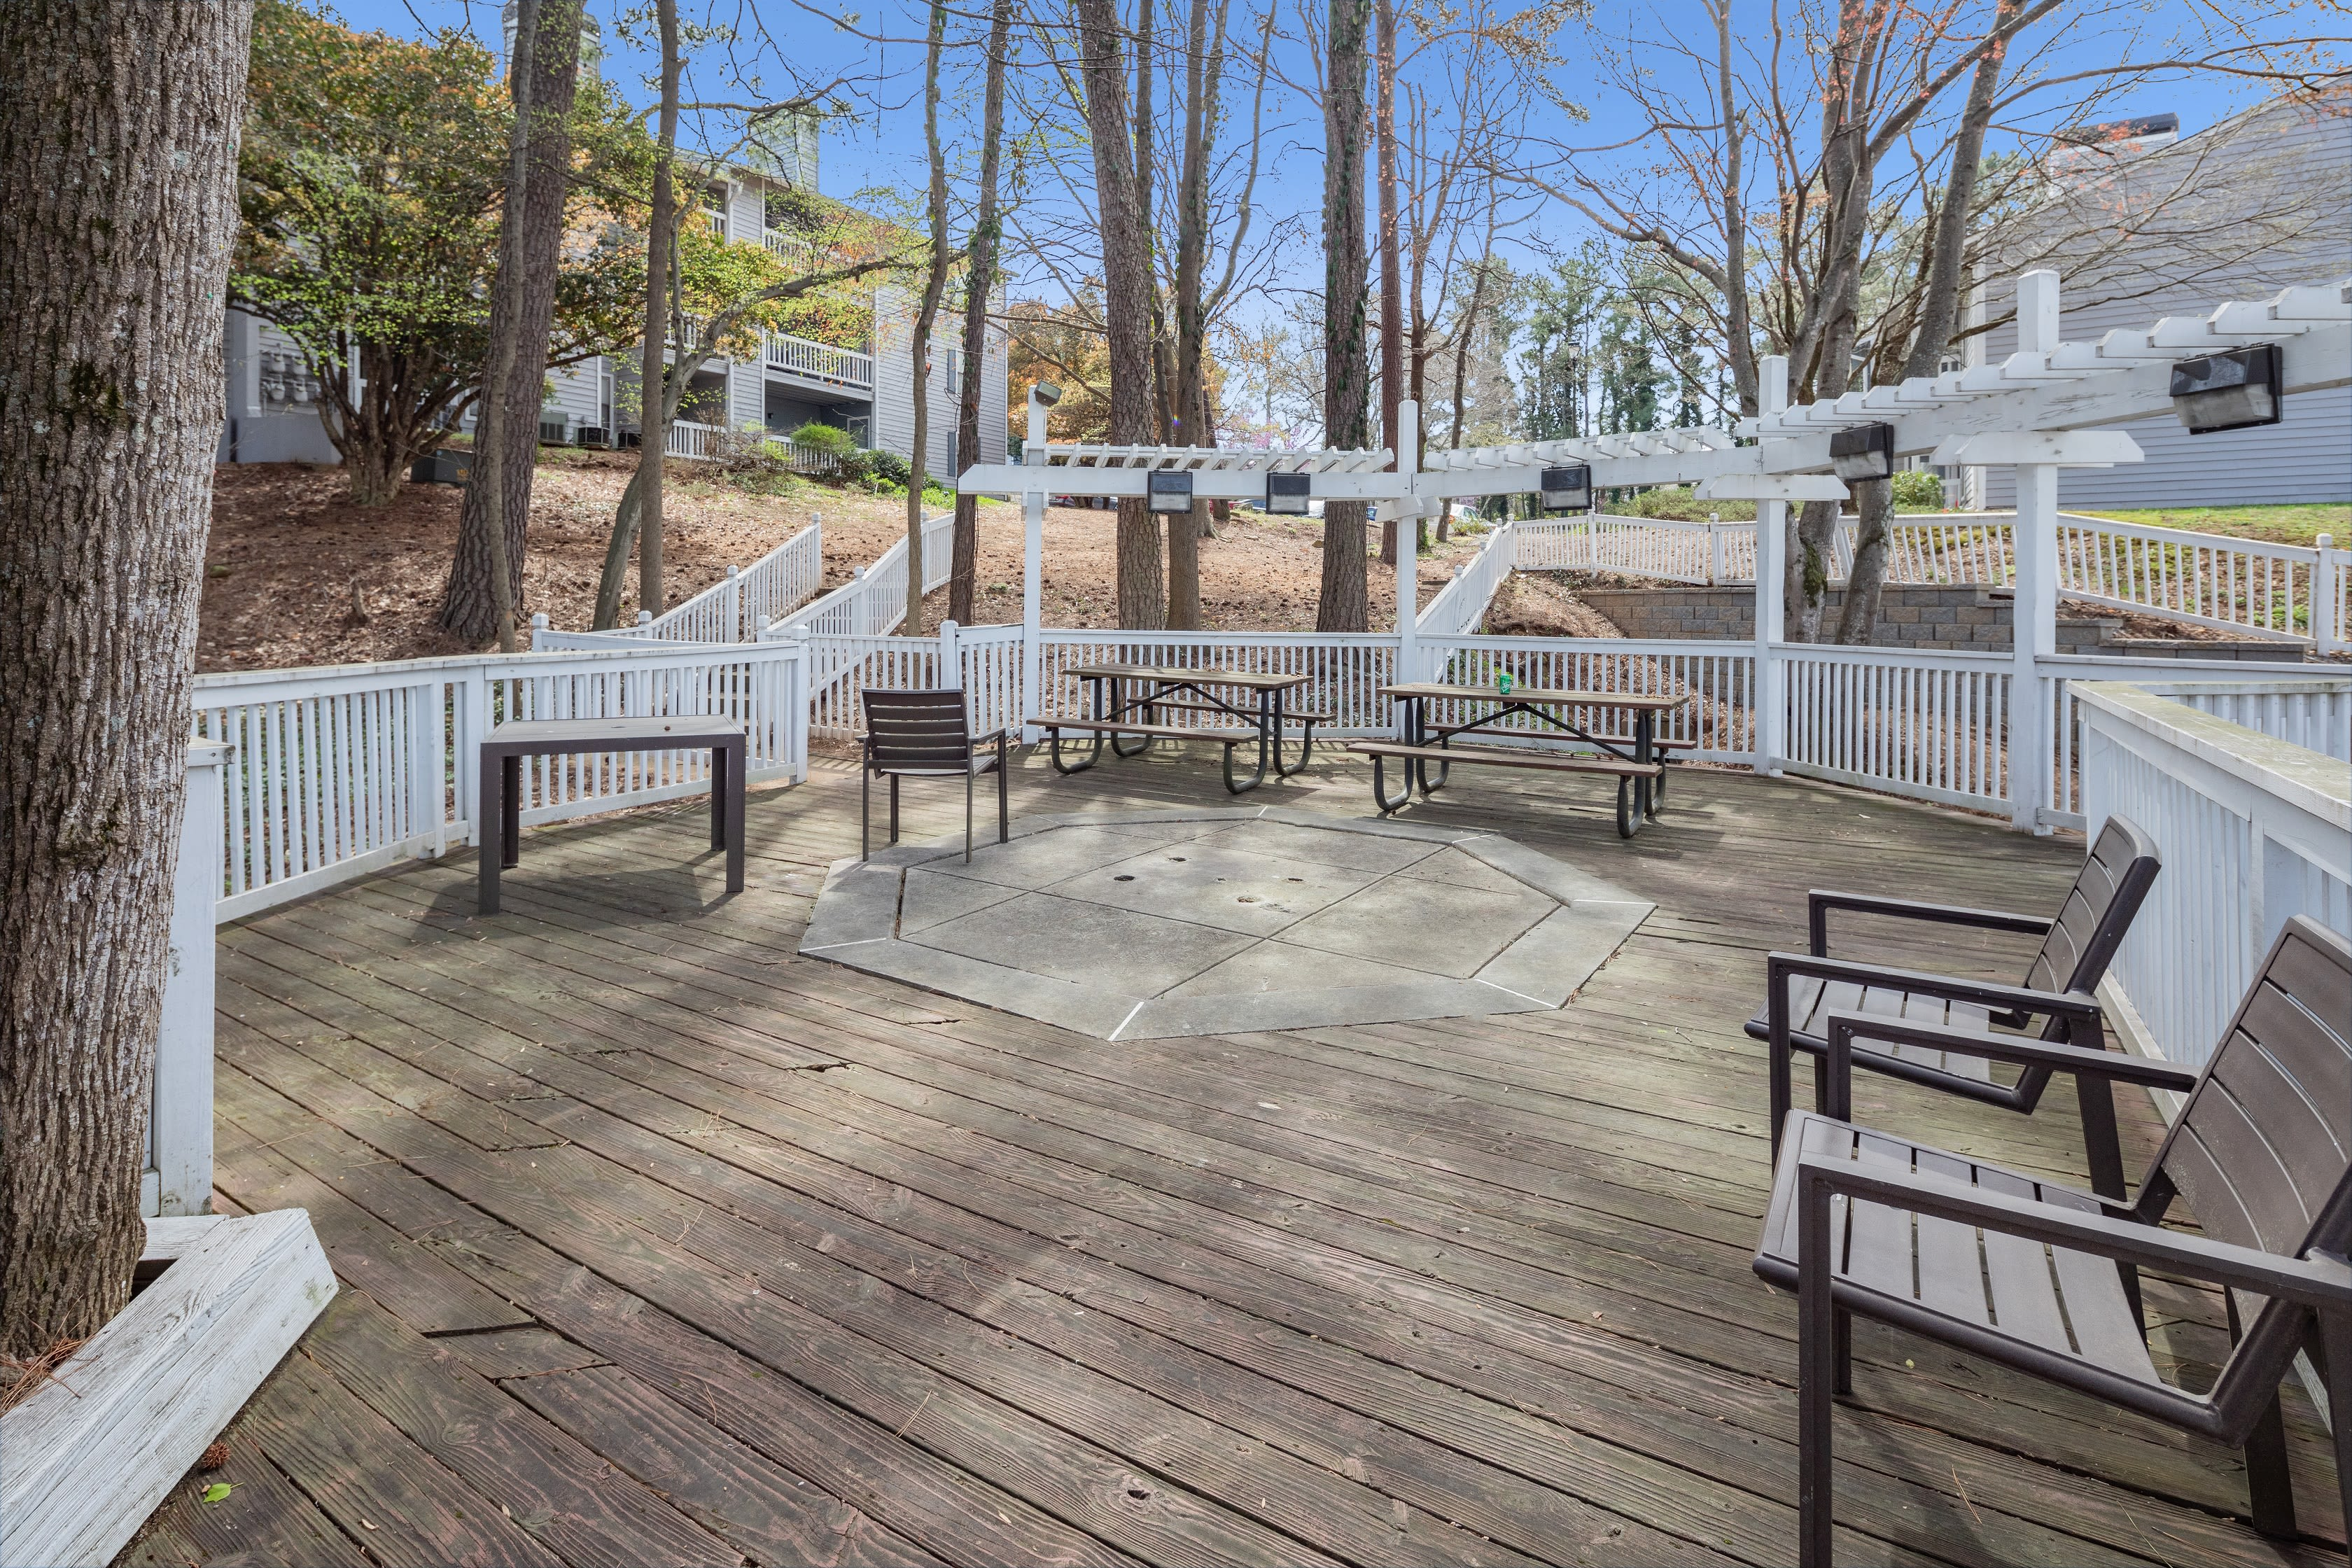 An outdoor seating area for residents at The Everette at East Cobb in Marietta, Georgia